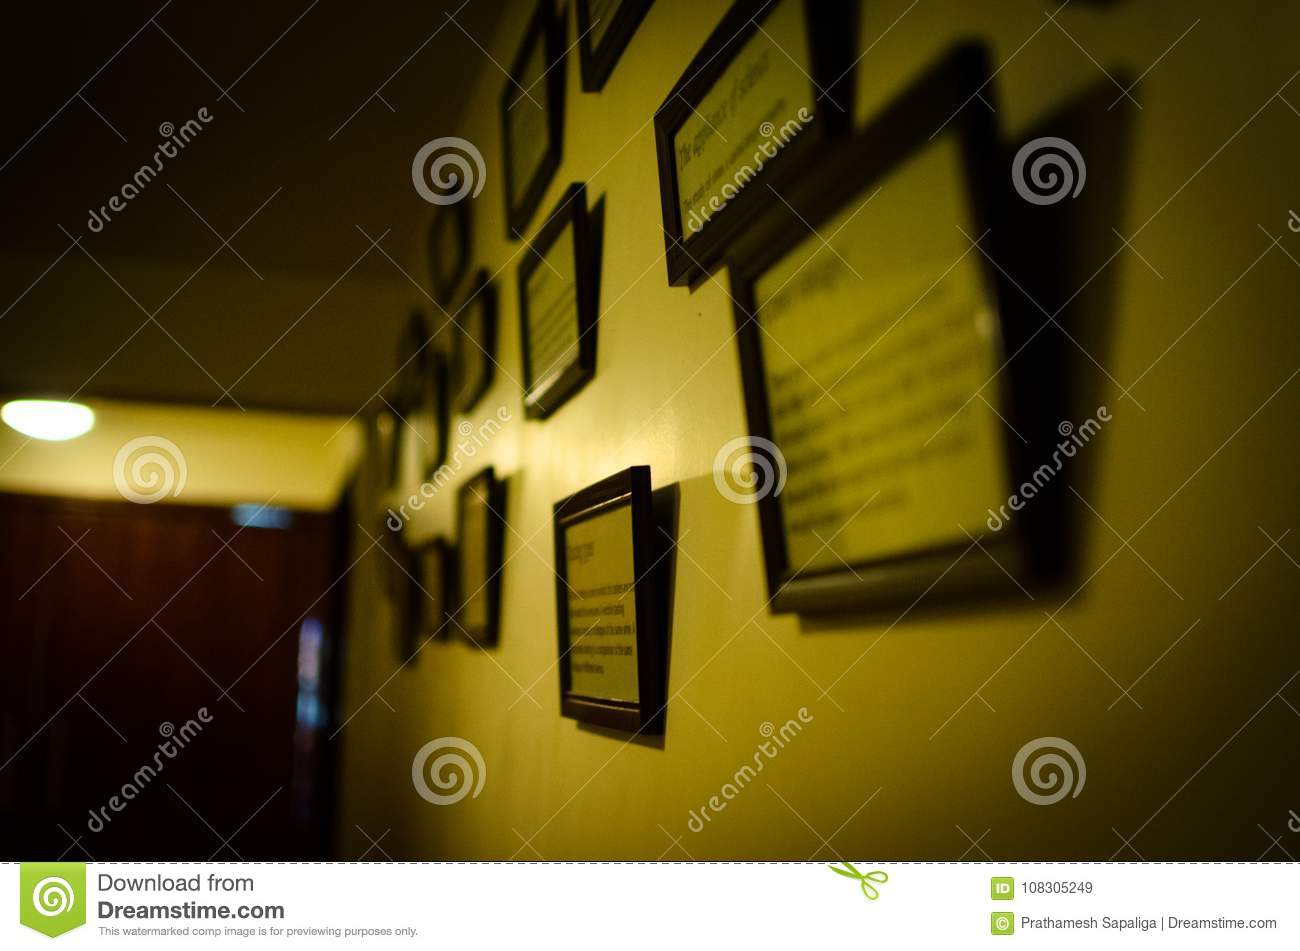 Wall With Many Frames Hanging On It Stock Image - Image of ...